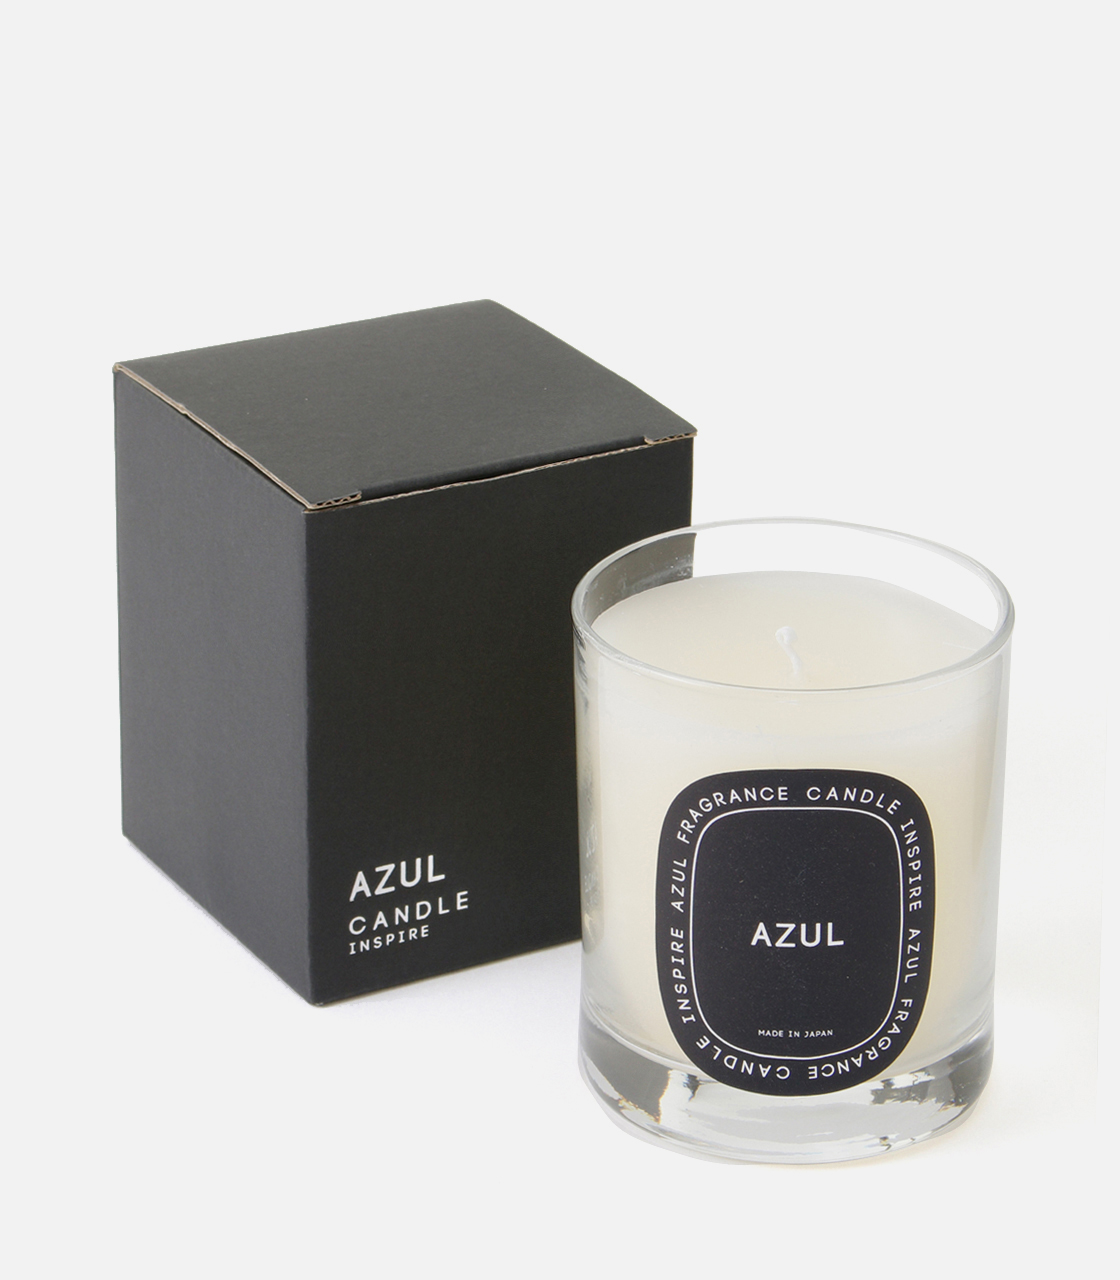 AZUL CANDLE/アズールキャンドル 詳細画像 BLK 6